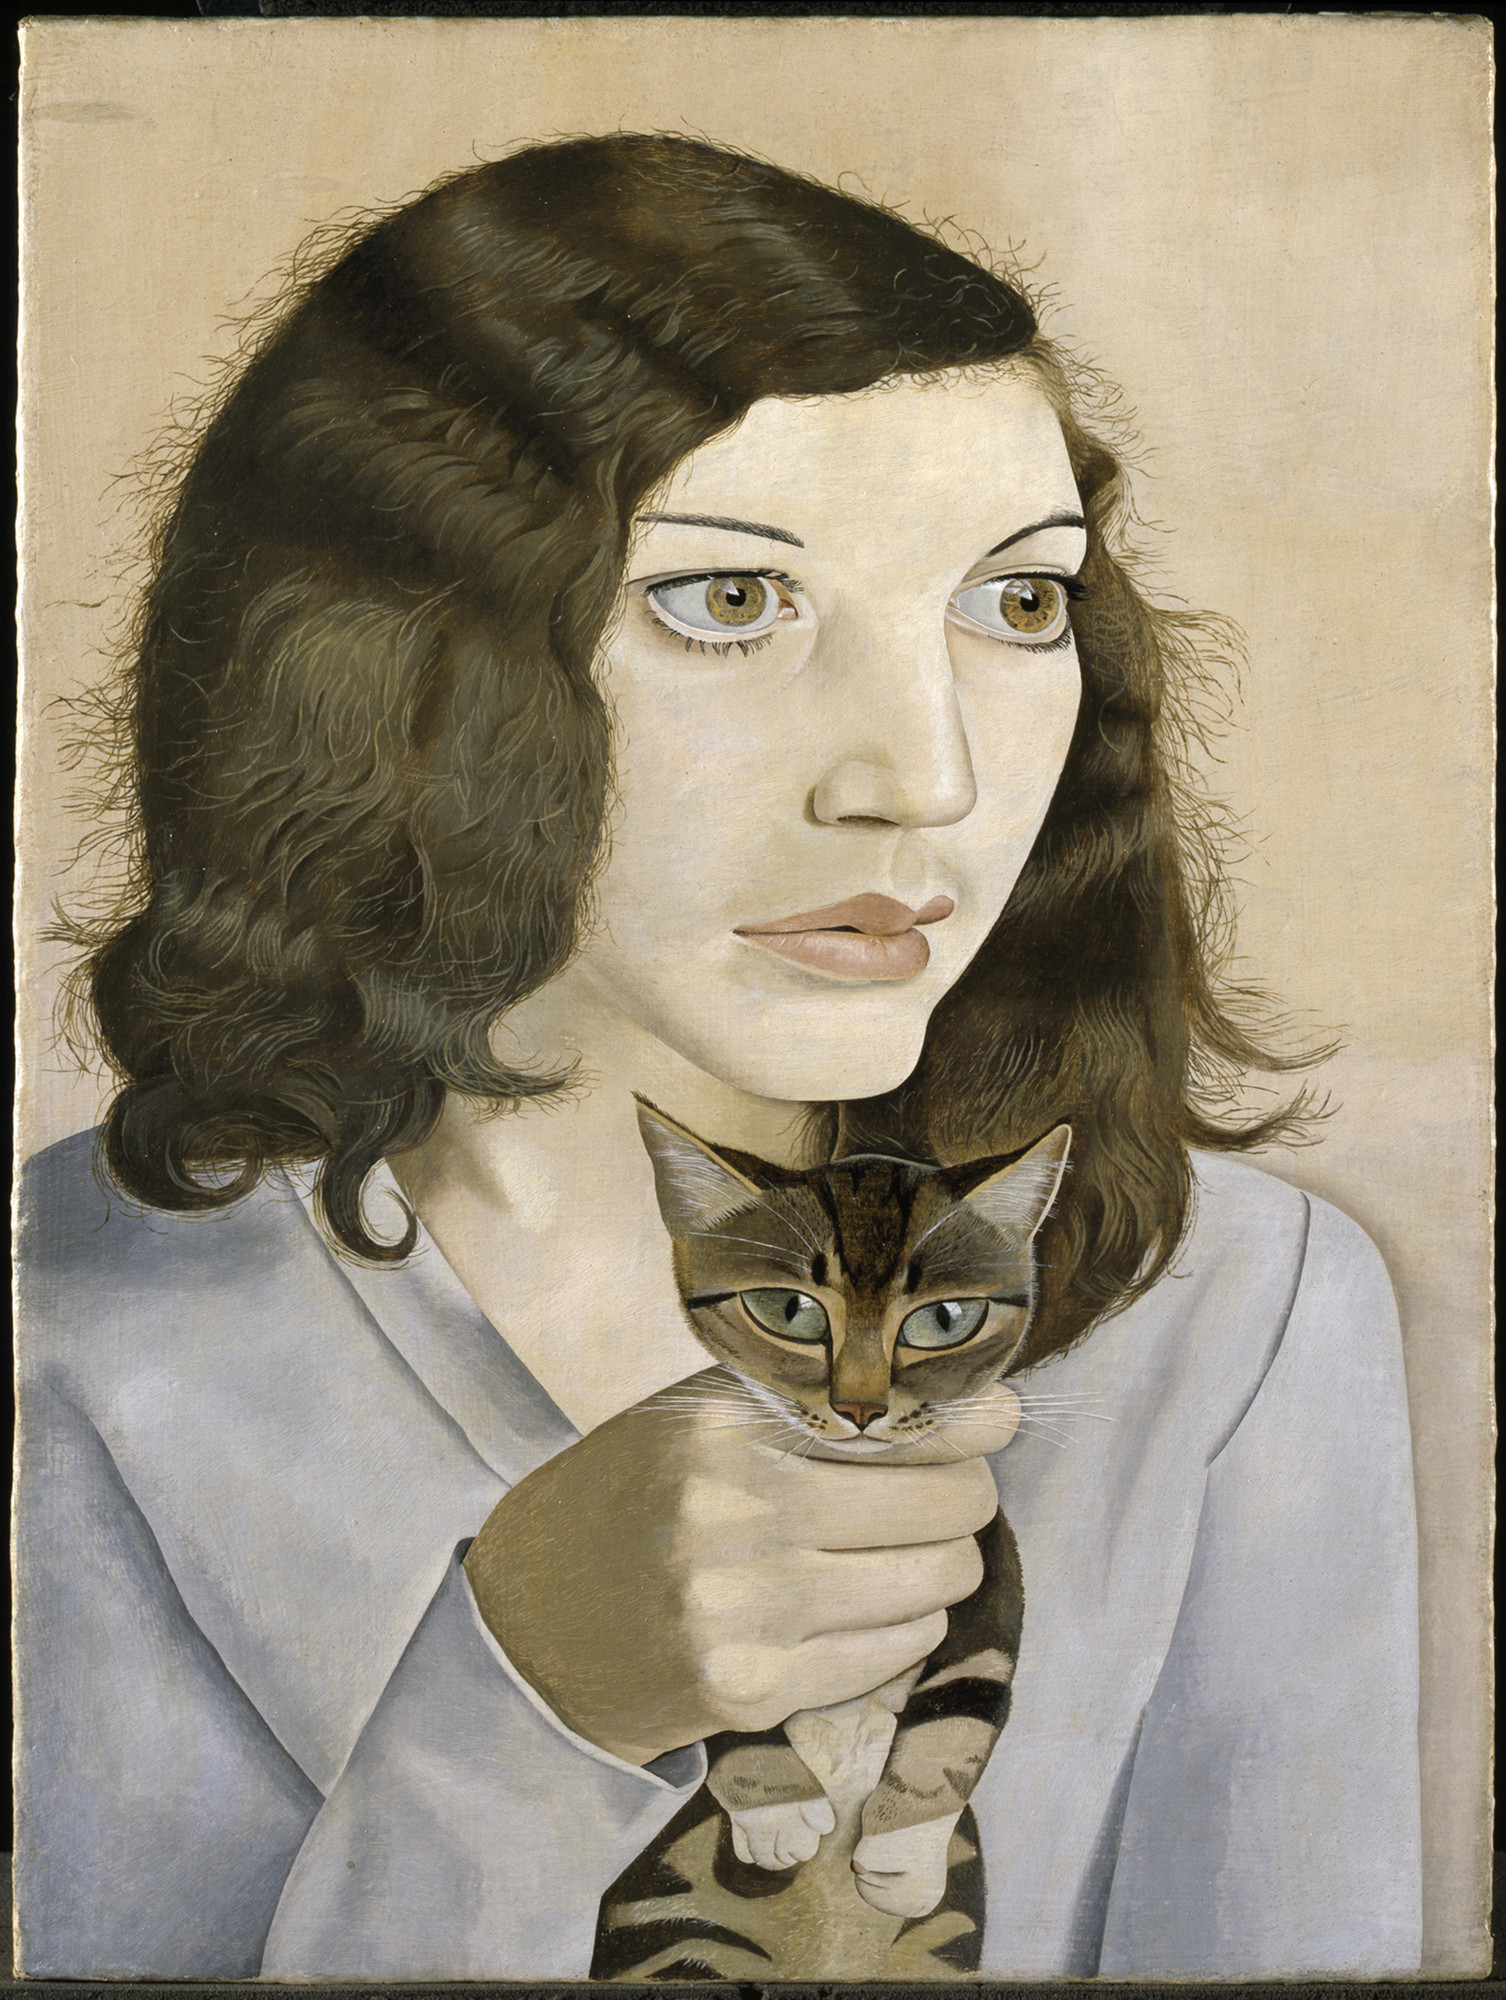 Lucian Freud, born in Berlin, embraced powerful motifs from German New Objectivity painting in his early work